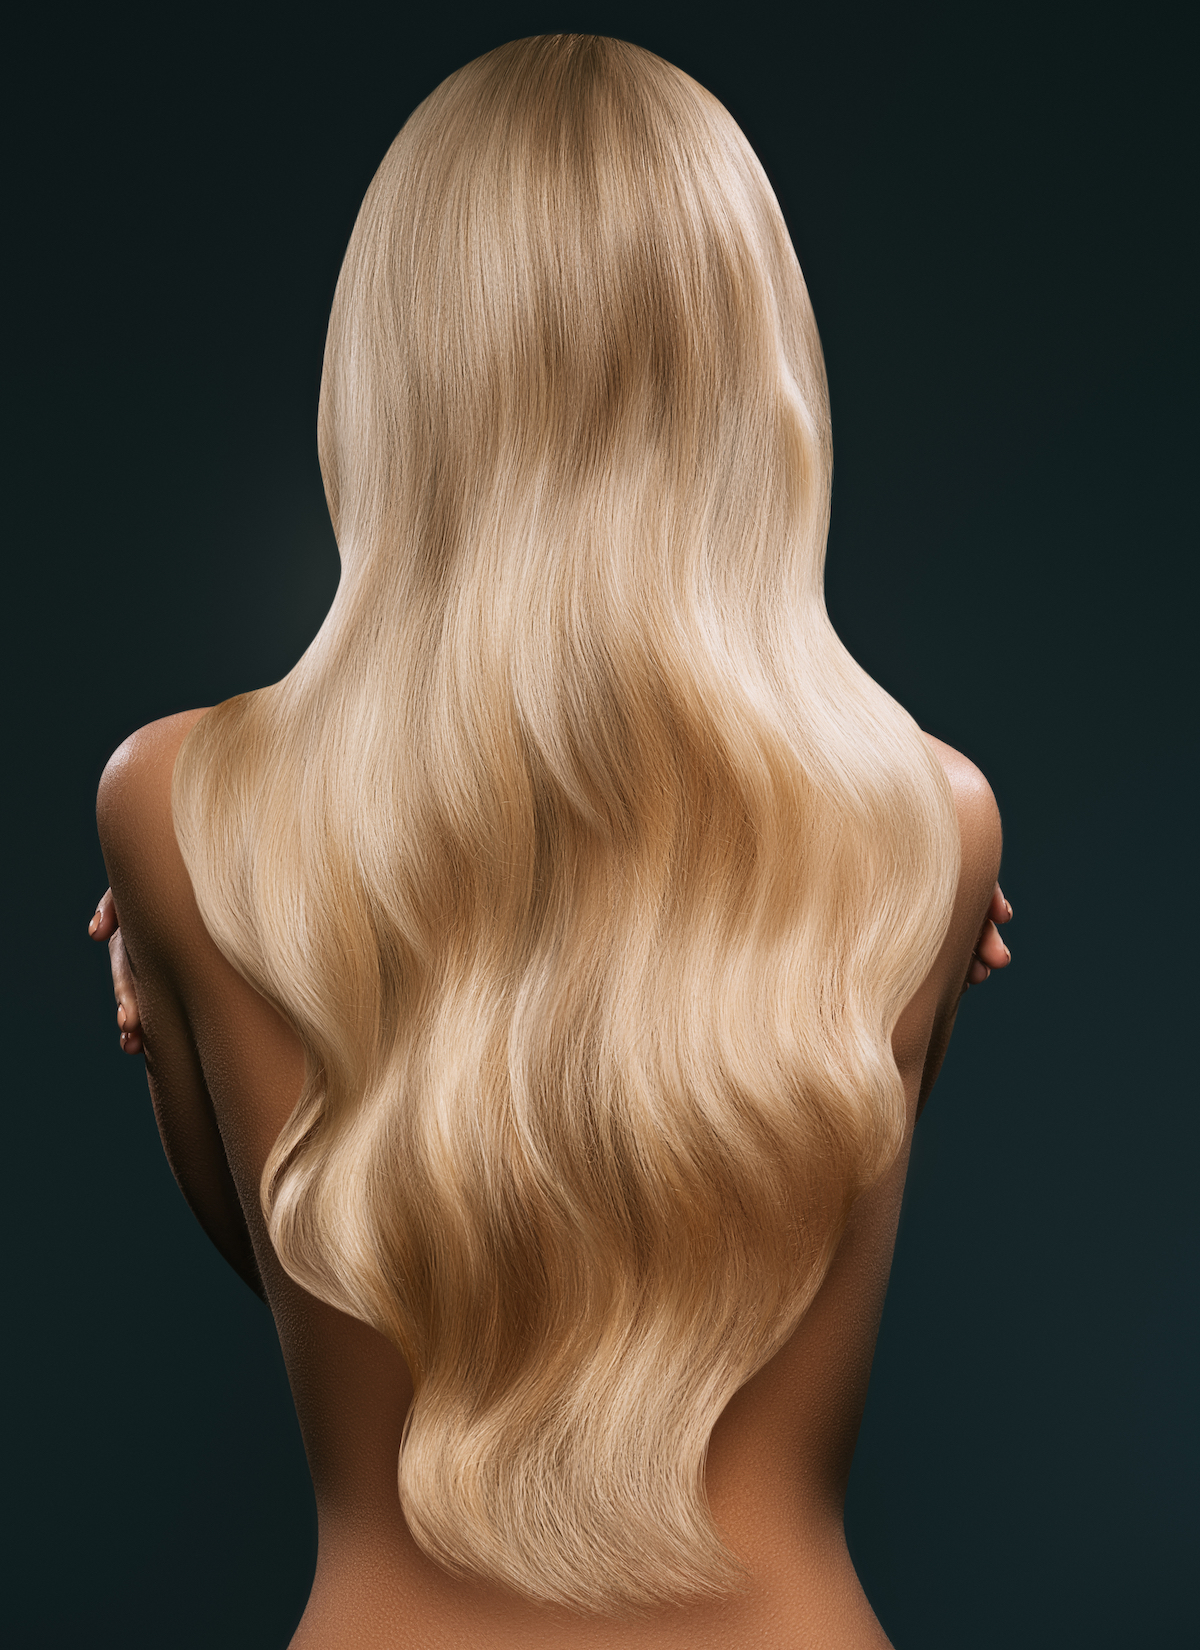 back,view,of,woman,with,long,blond,hair,,isolated,on